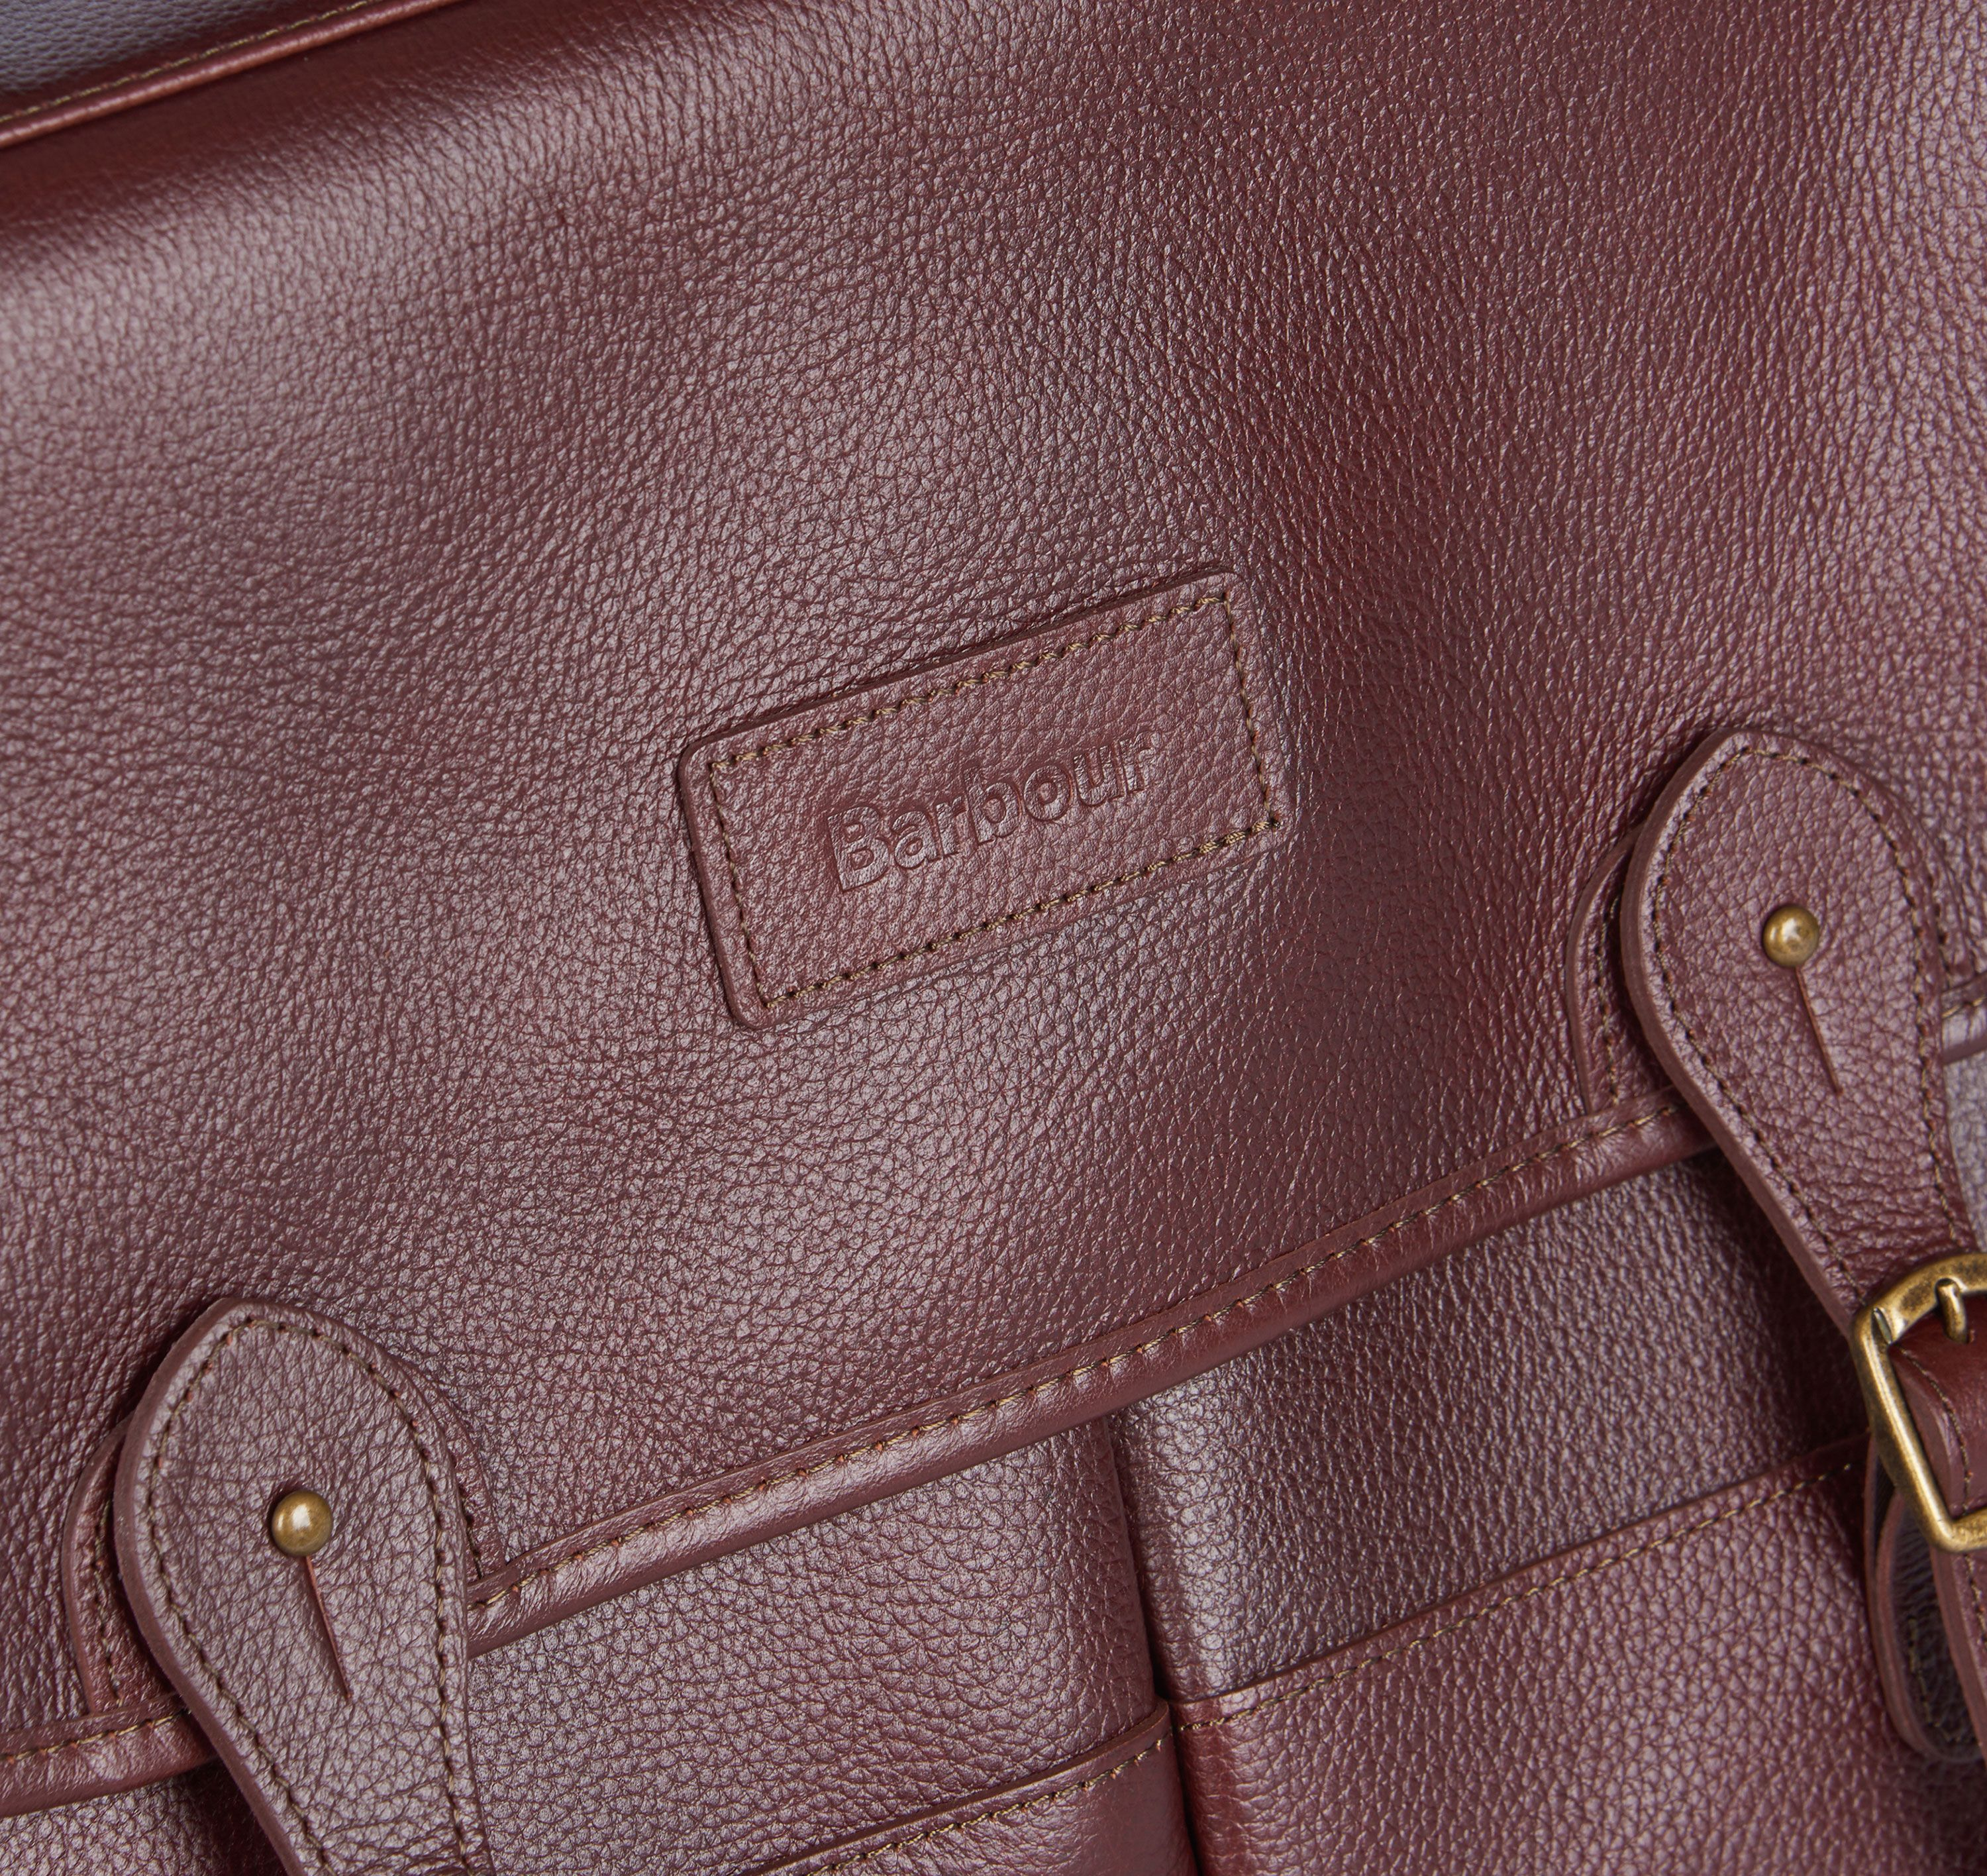 Barbour Leather Briefcase_03_Uba0011_Dk Brown